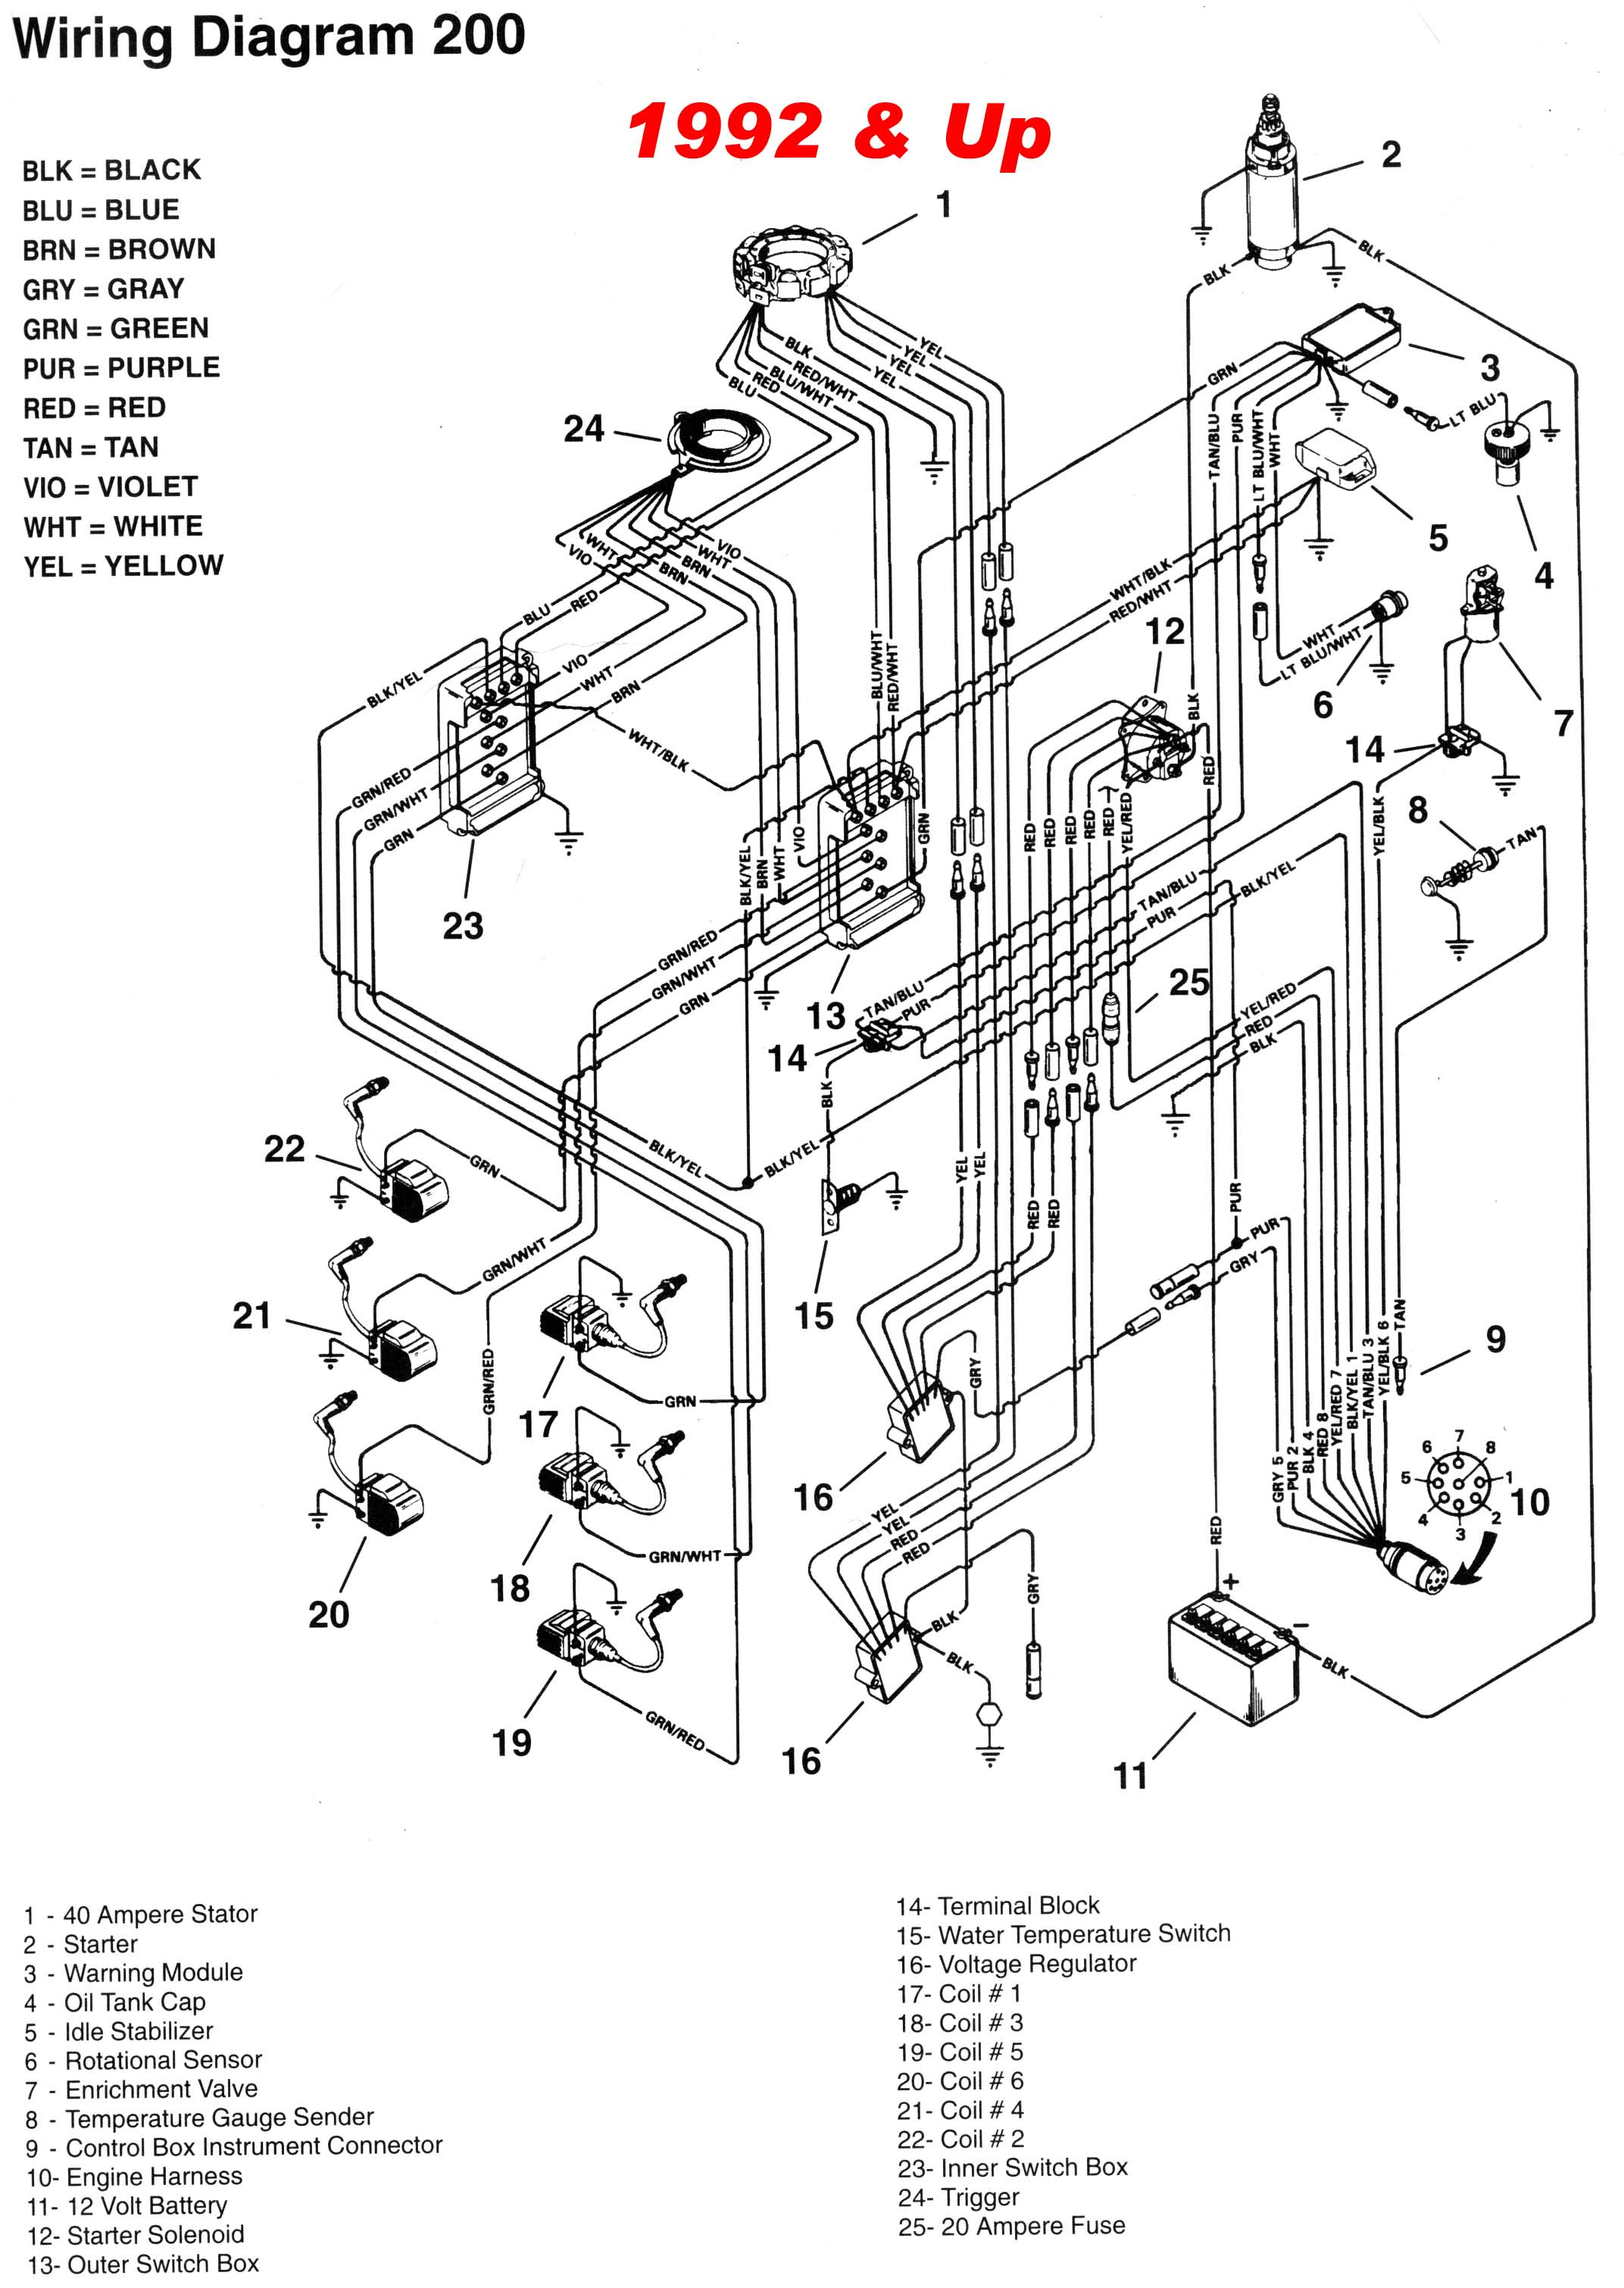 mercury_92up_200_wiring wiring diagram for 1998 mercury outboard 150 readingrat net Solenoid Switch Wiring Diagram at gsmportal.co